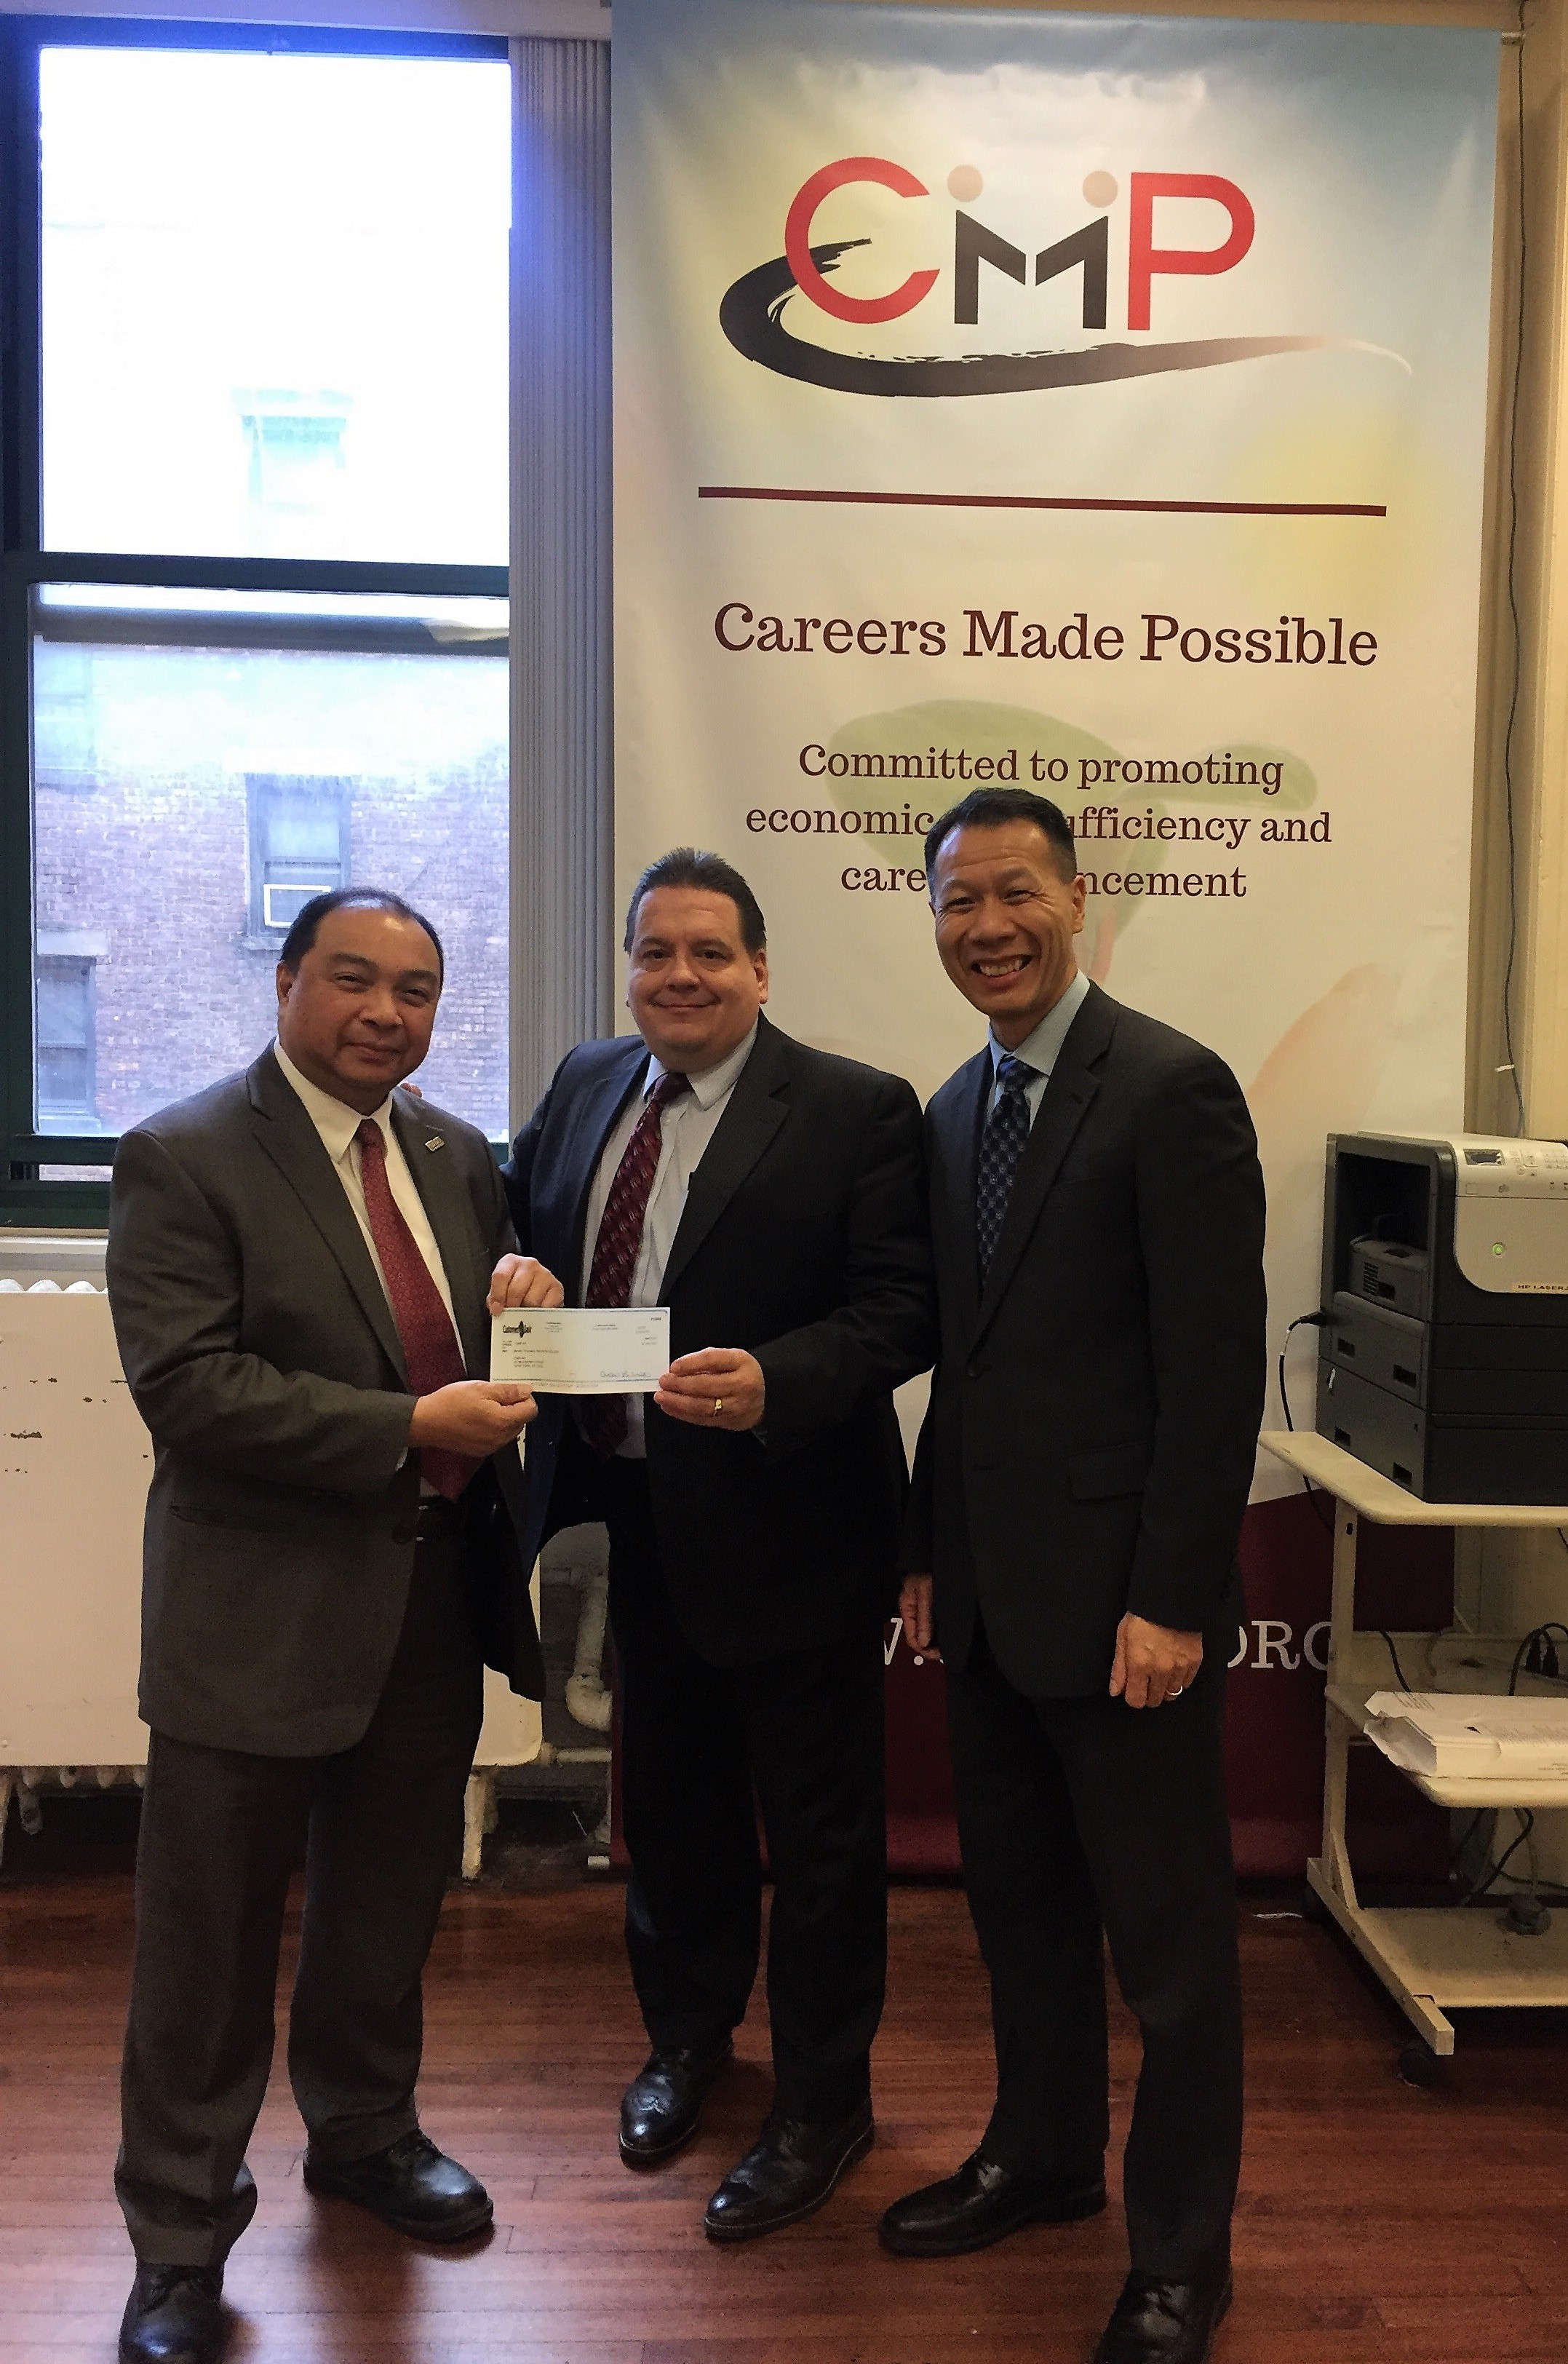 Customers Bank Senior Vice President  Mr. Paul Hodowanec  (center) and Vice President  Mr. Danny Wong  (right) handing over the donation check to CMP Executive Director  Mr. Hong Shing Lee  (left)